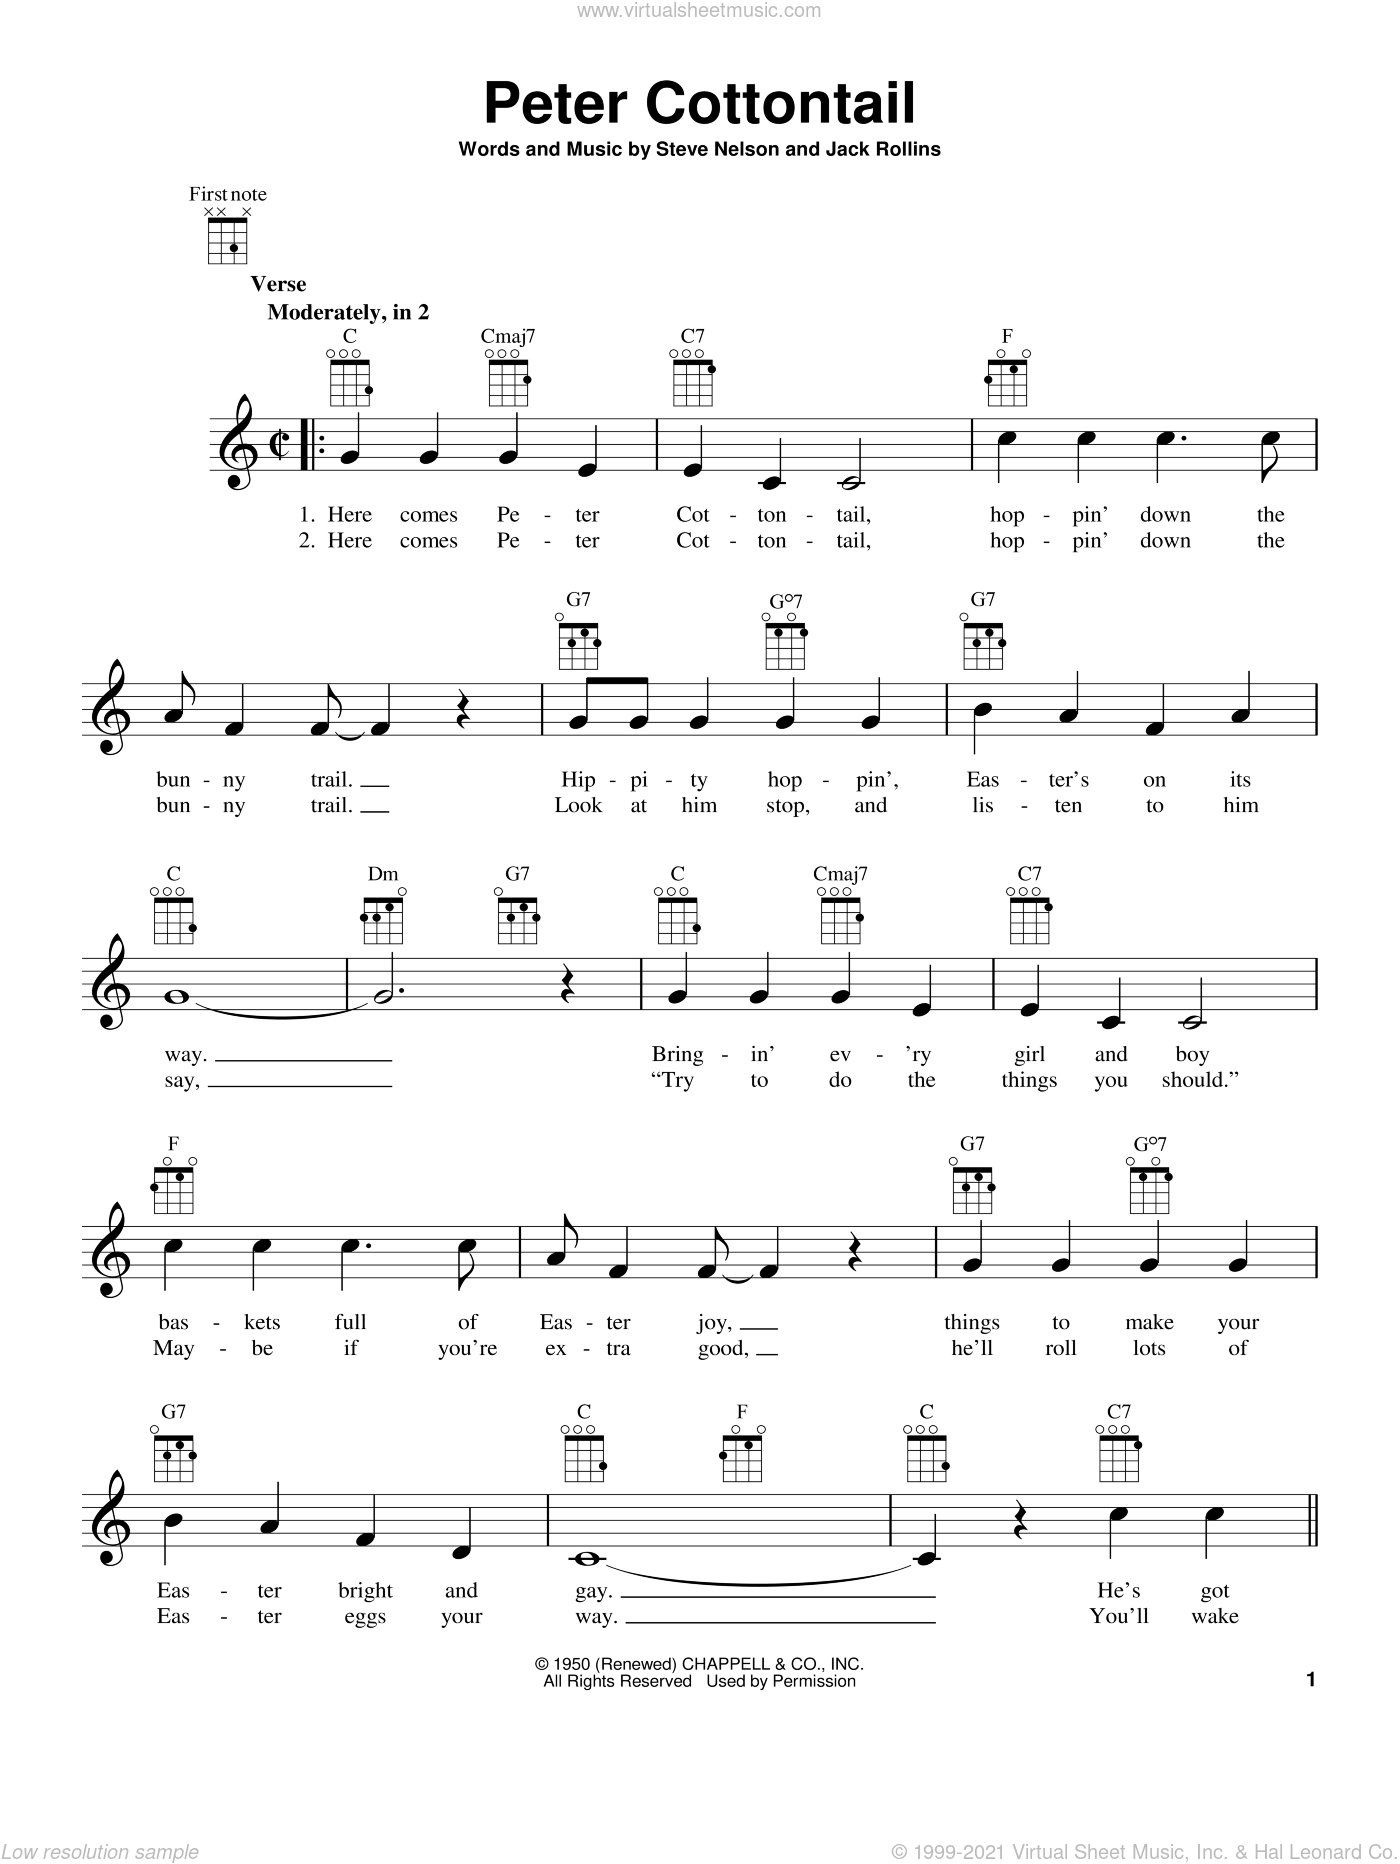 Peter Cottontail sheet music for ukulele by Steve Nelson and Jack Rollins, intermediate skill level